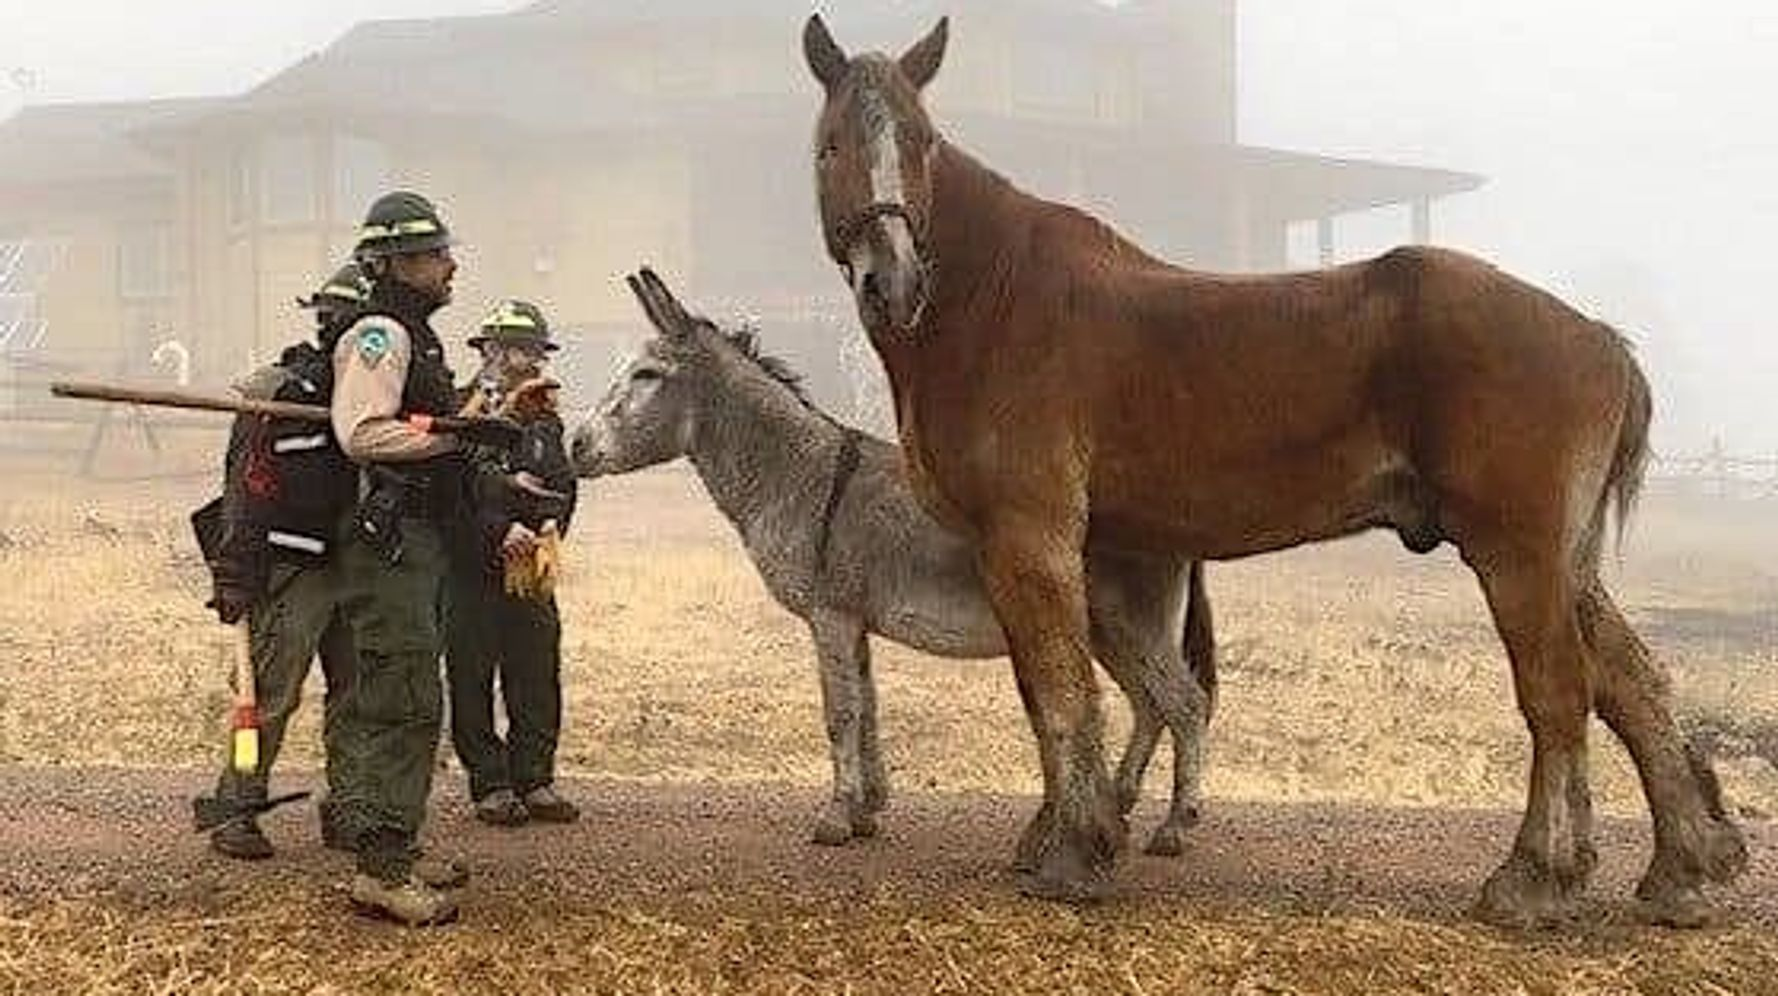 Donkey Love: Colorado Rancher Who Fled Fire Celebrates After Finding Pals Alive